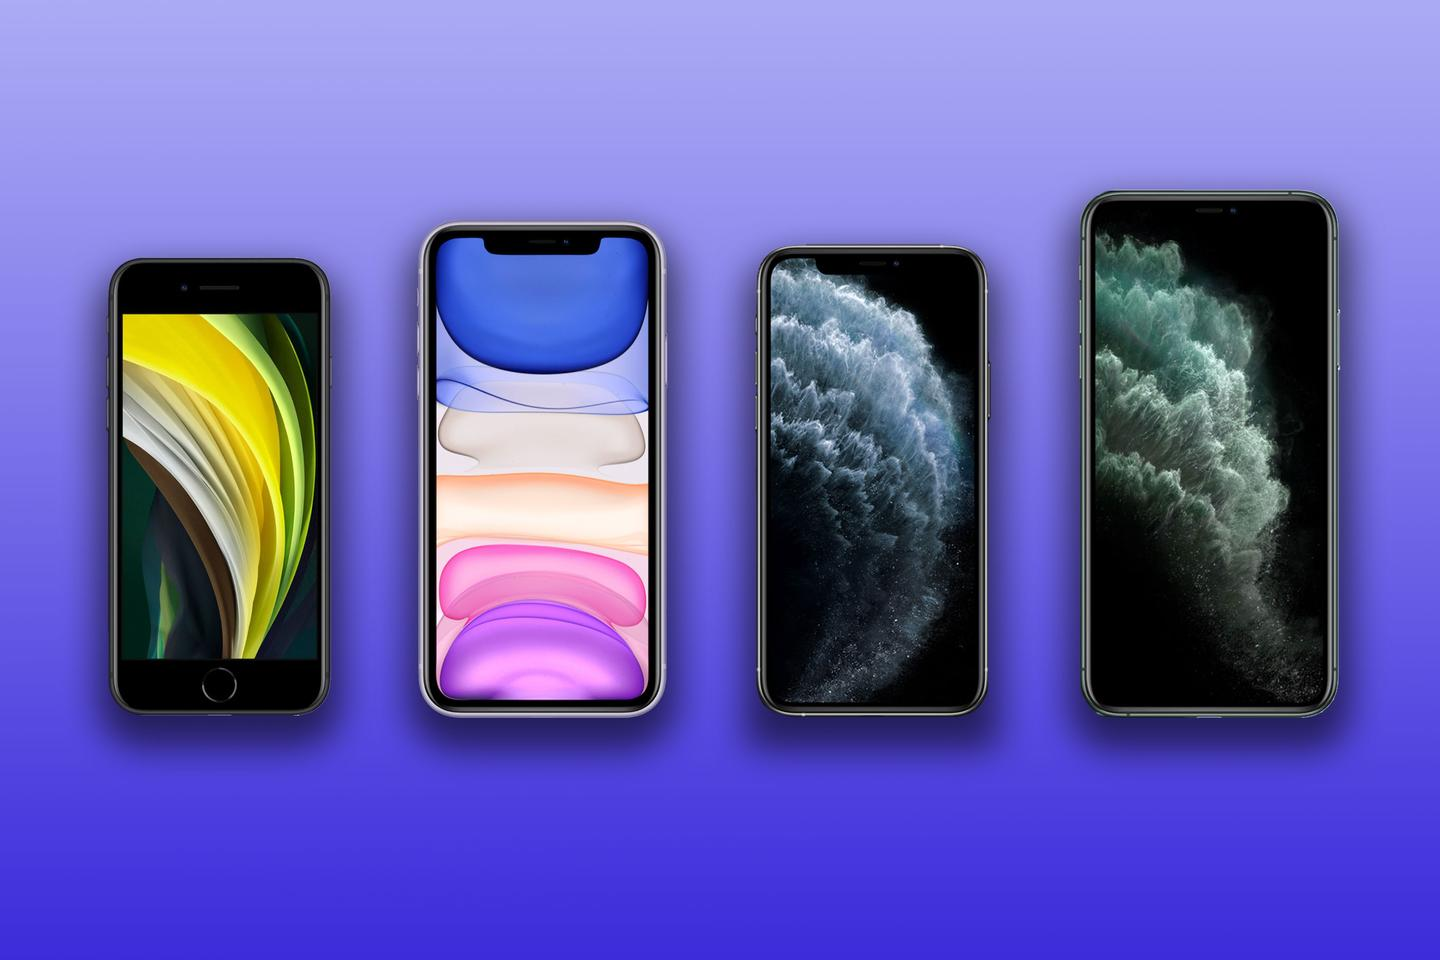 New Atlas compares the specs and features of the iPhone SE (2020) to the iPhone 11, 11 Pro and Pro Max